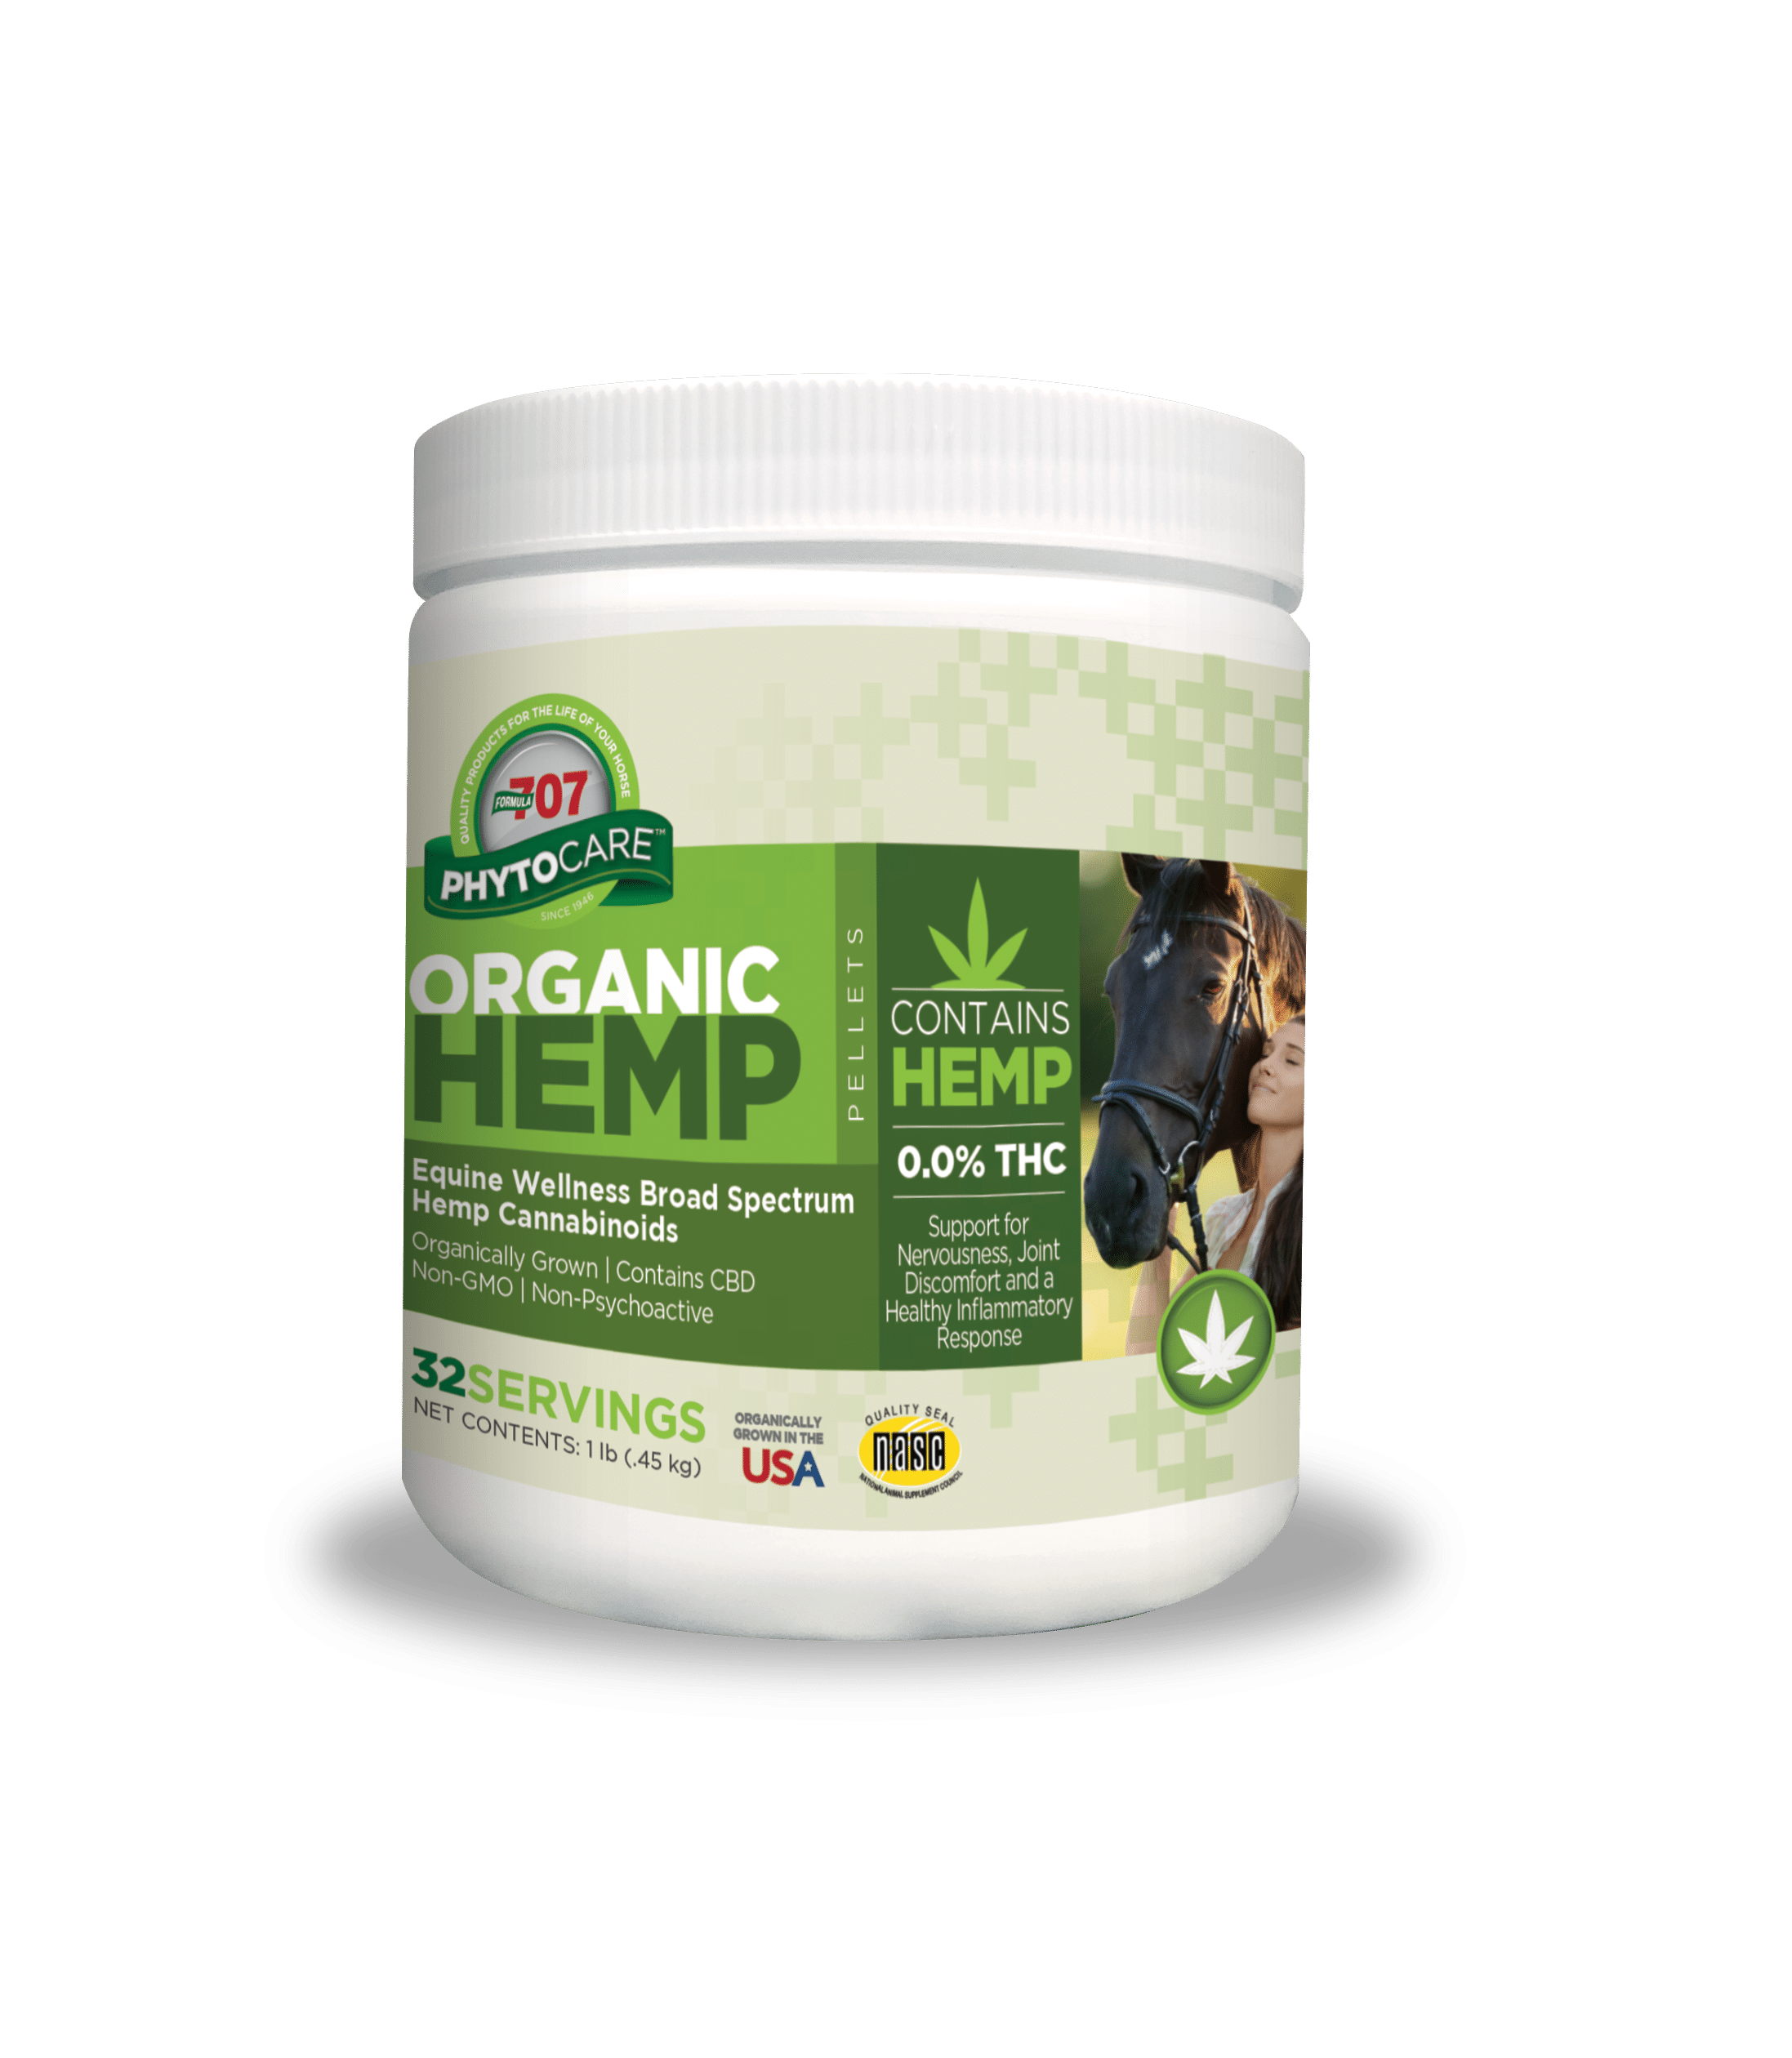 707 PhytoCare Organic 1bs